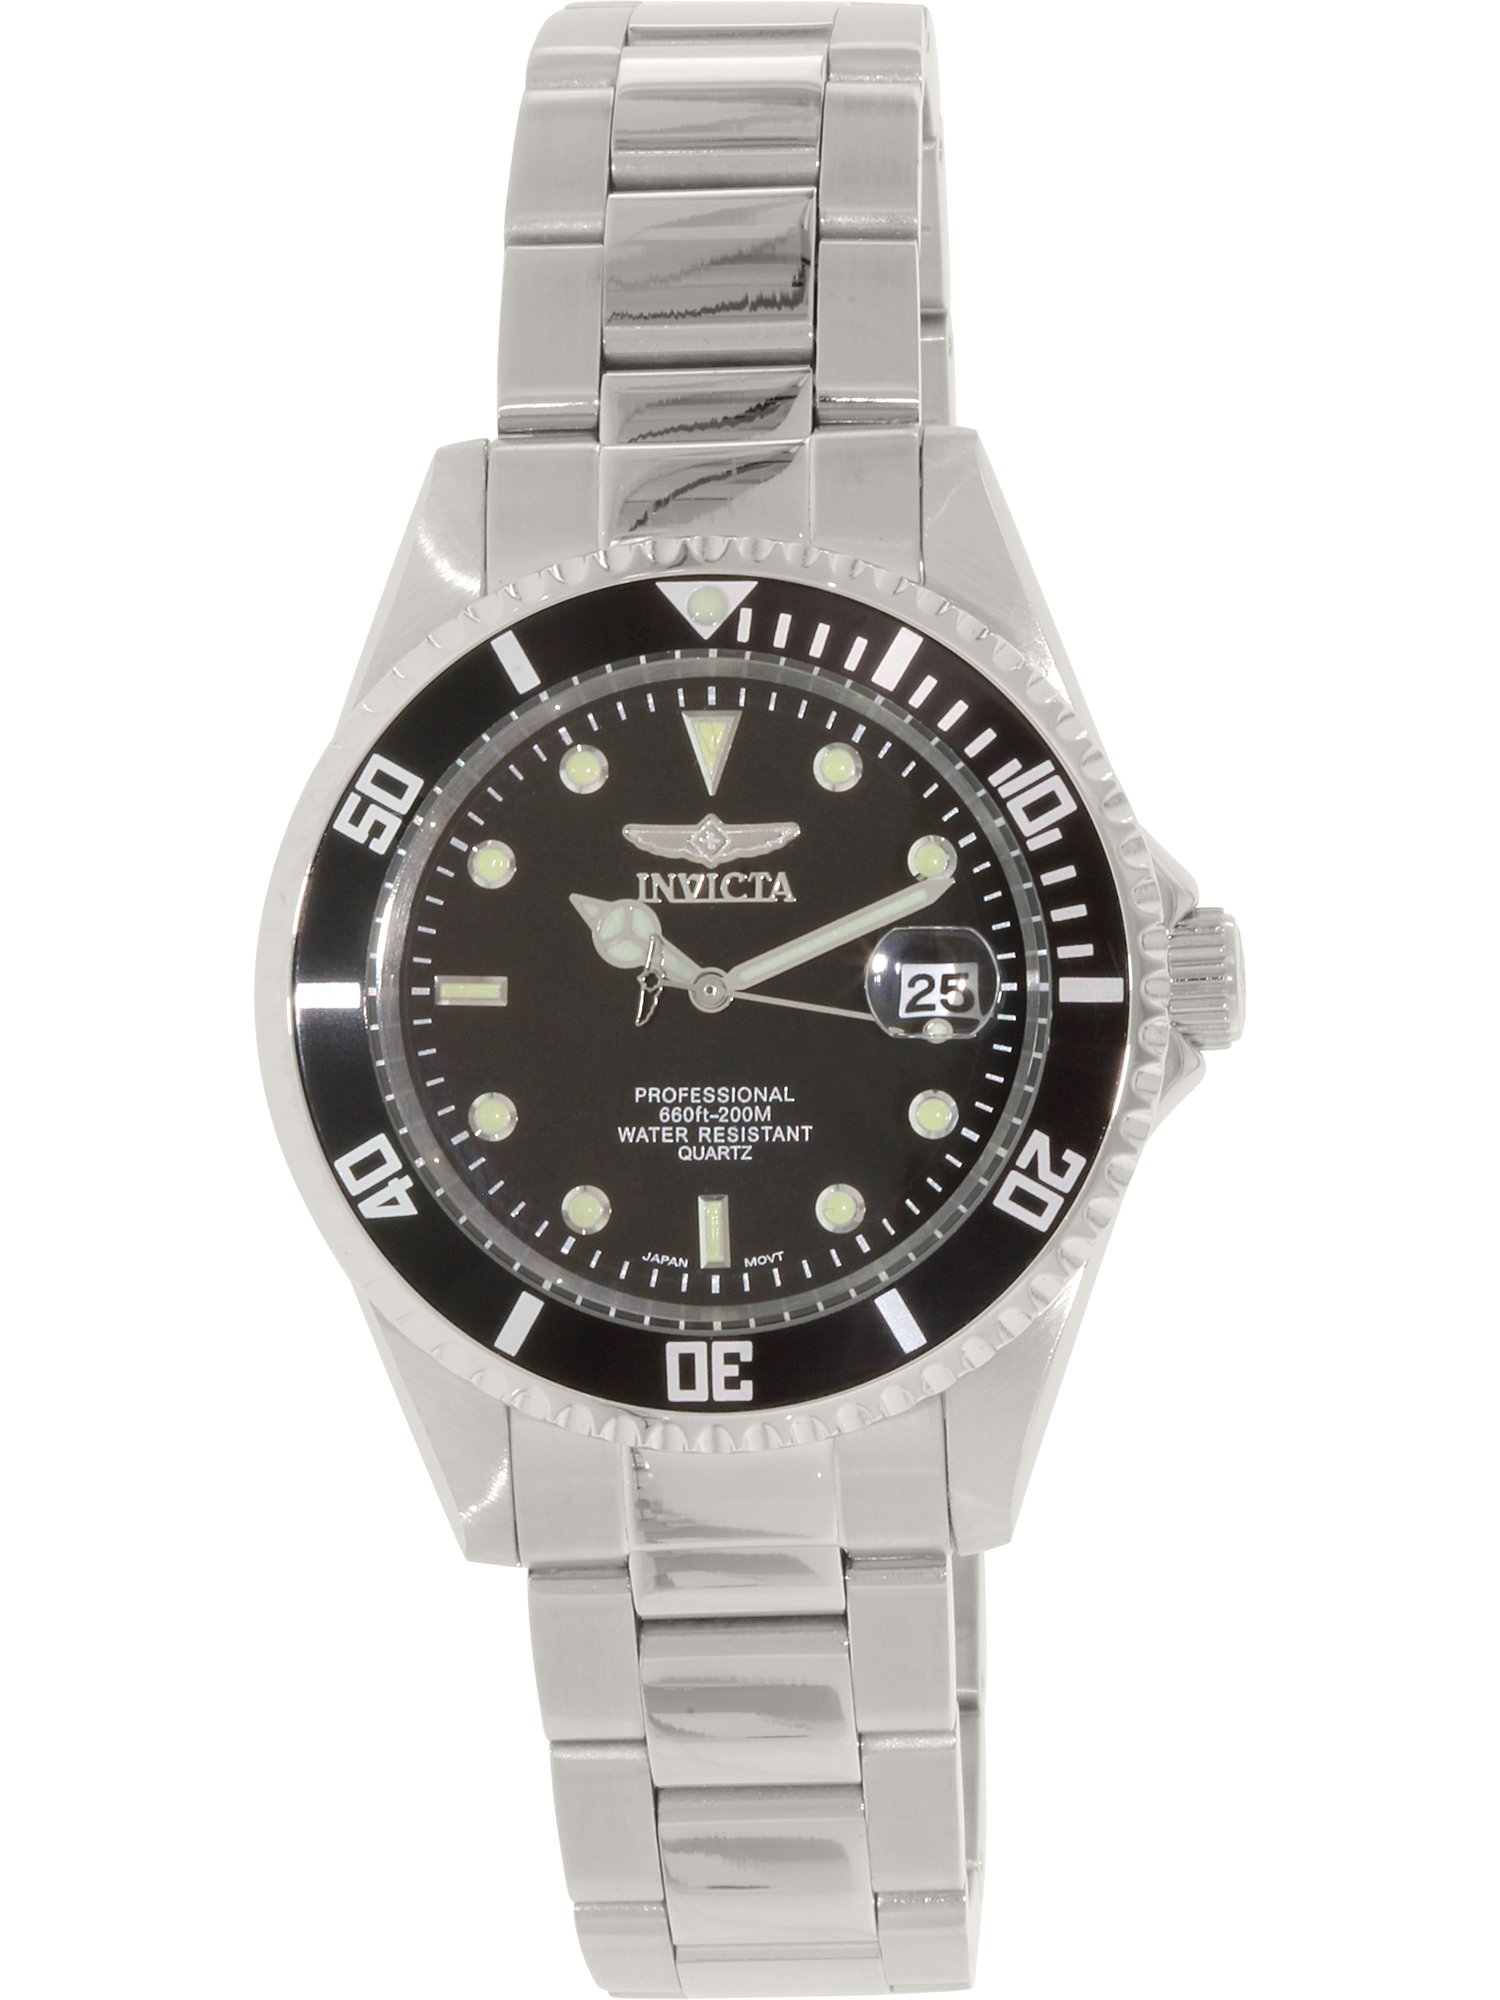 Invicta Men's Pro Diver 8932OB Silver Stainless-Steel Quartz Fashion Watch